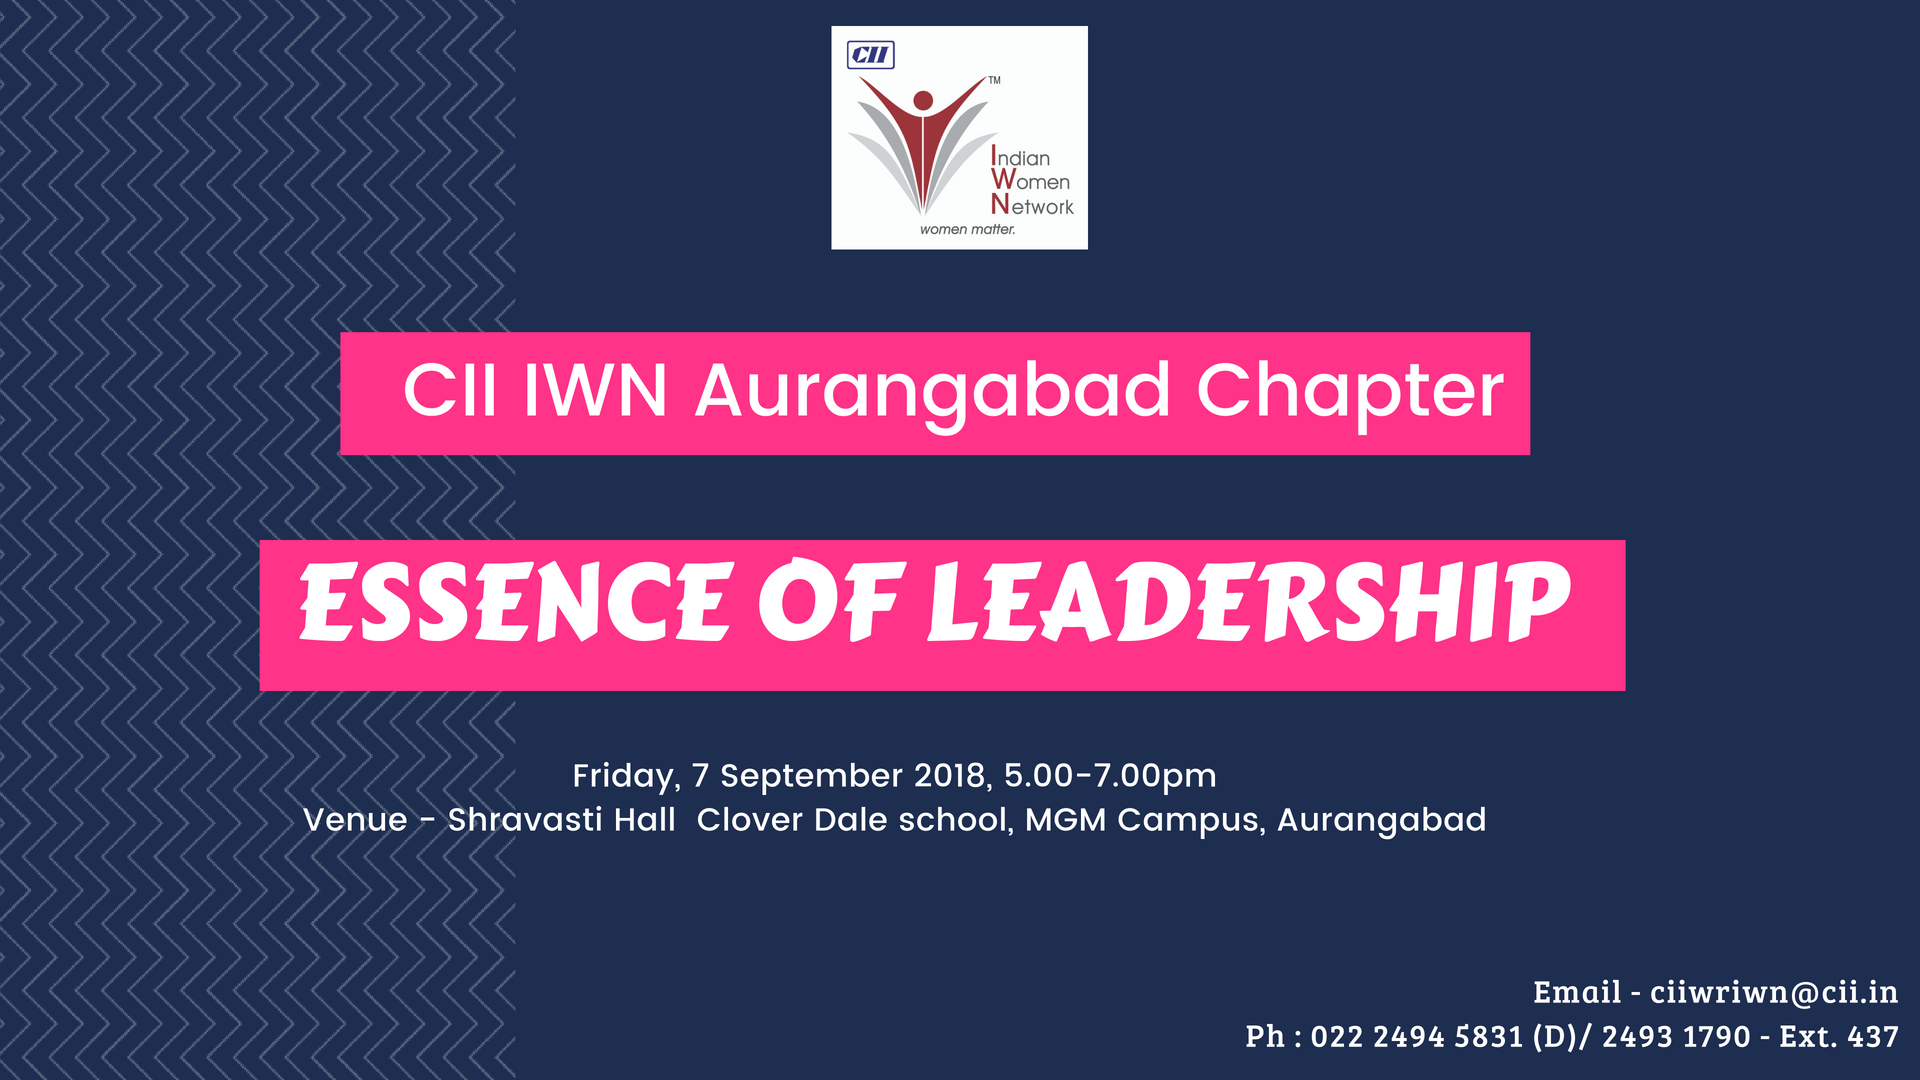 CII IWN Aurangabad Chapter - Session on Essence of Leadership